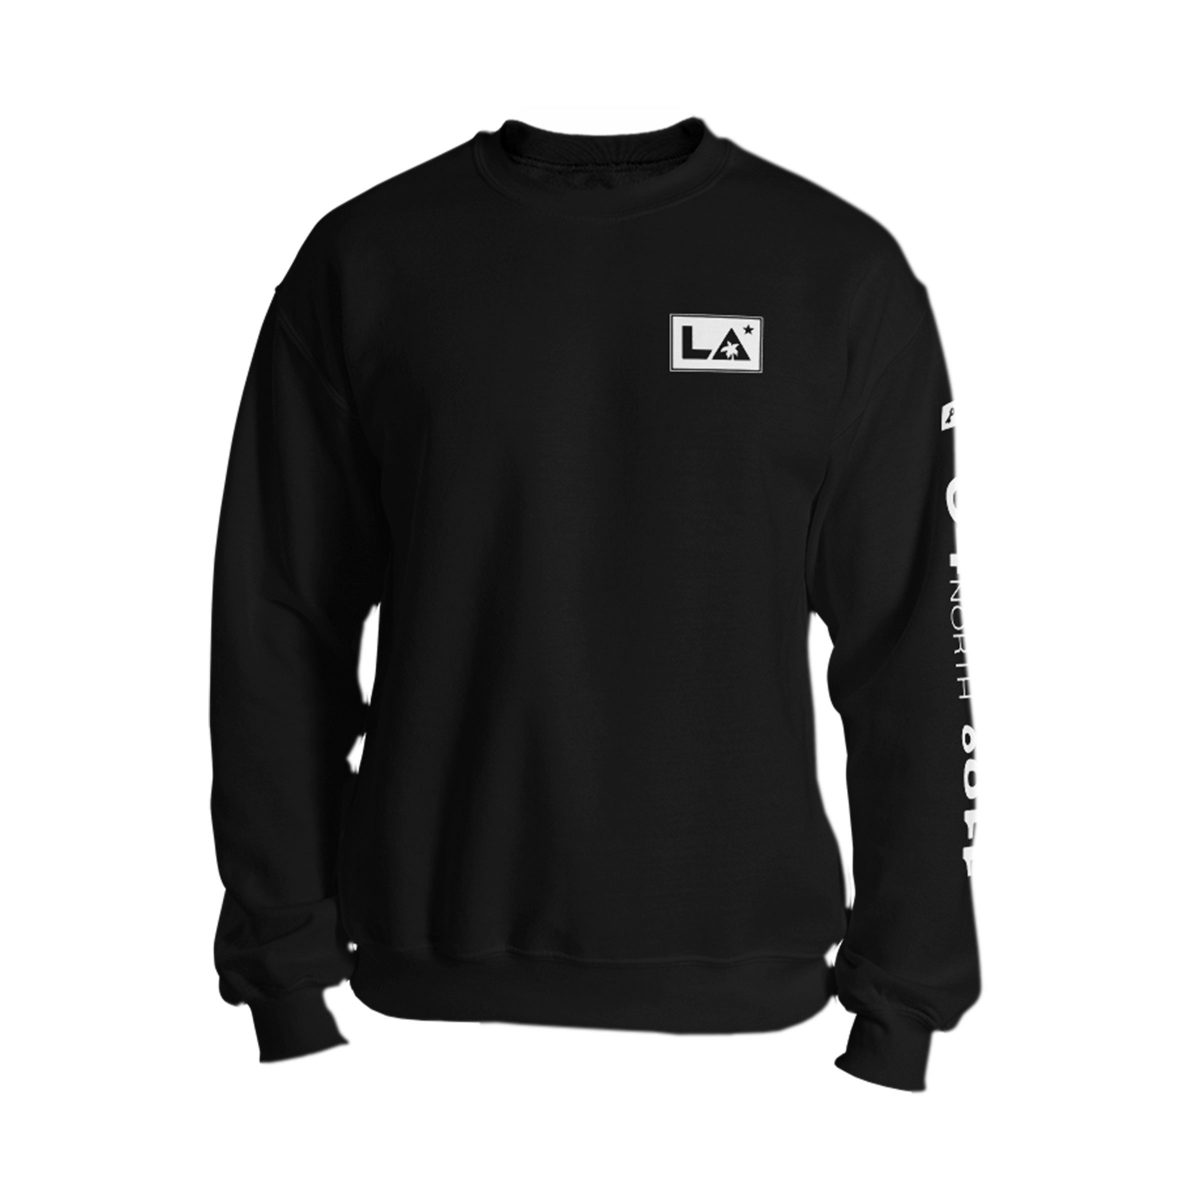 los angeles longitude and latitude sweatshirt